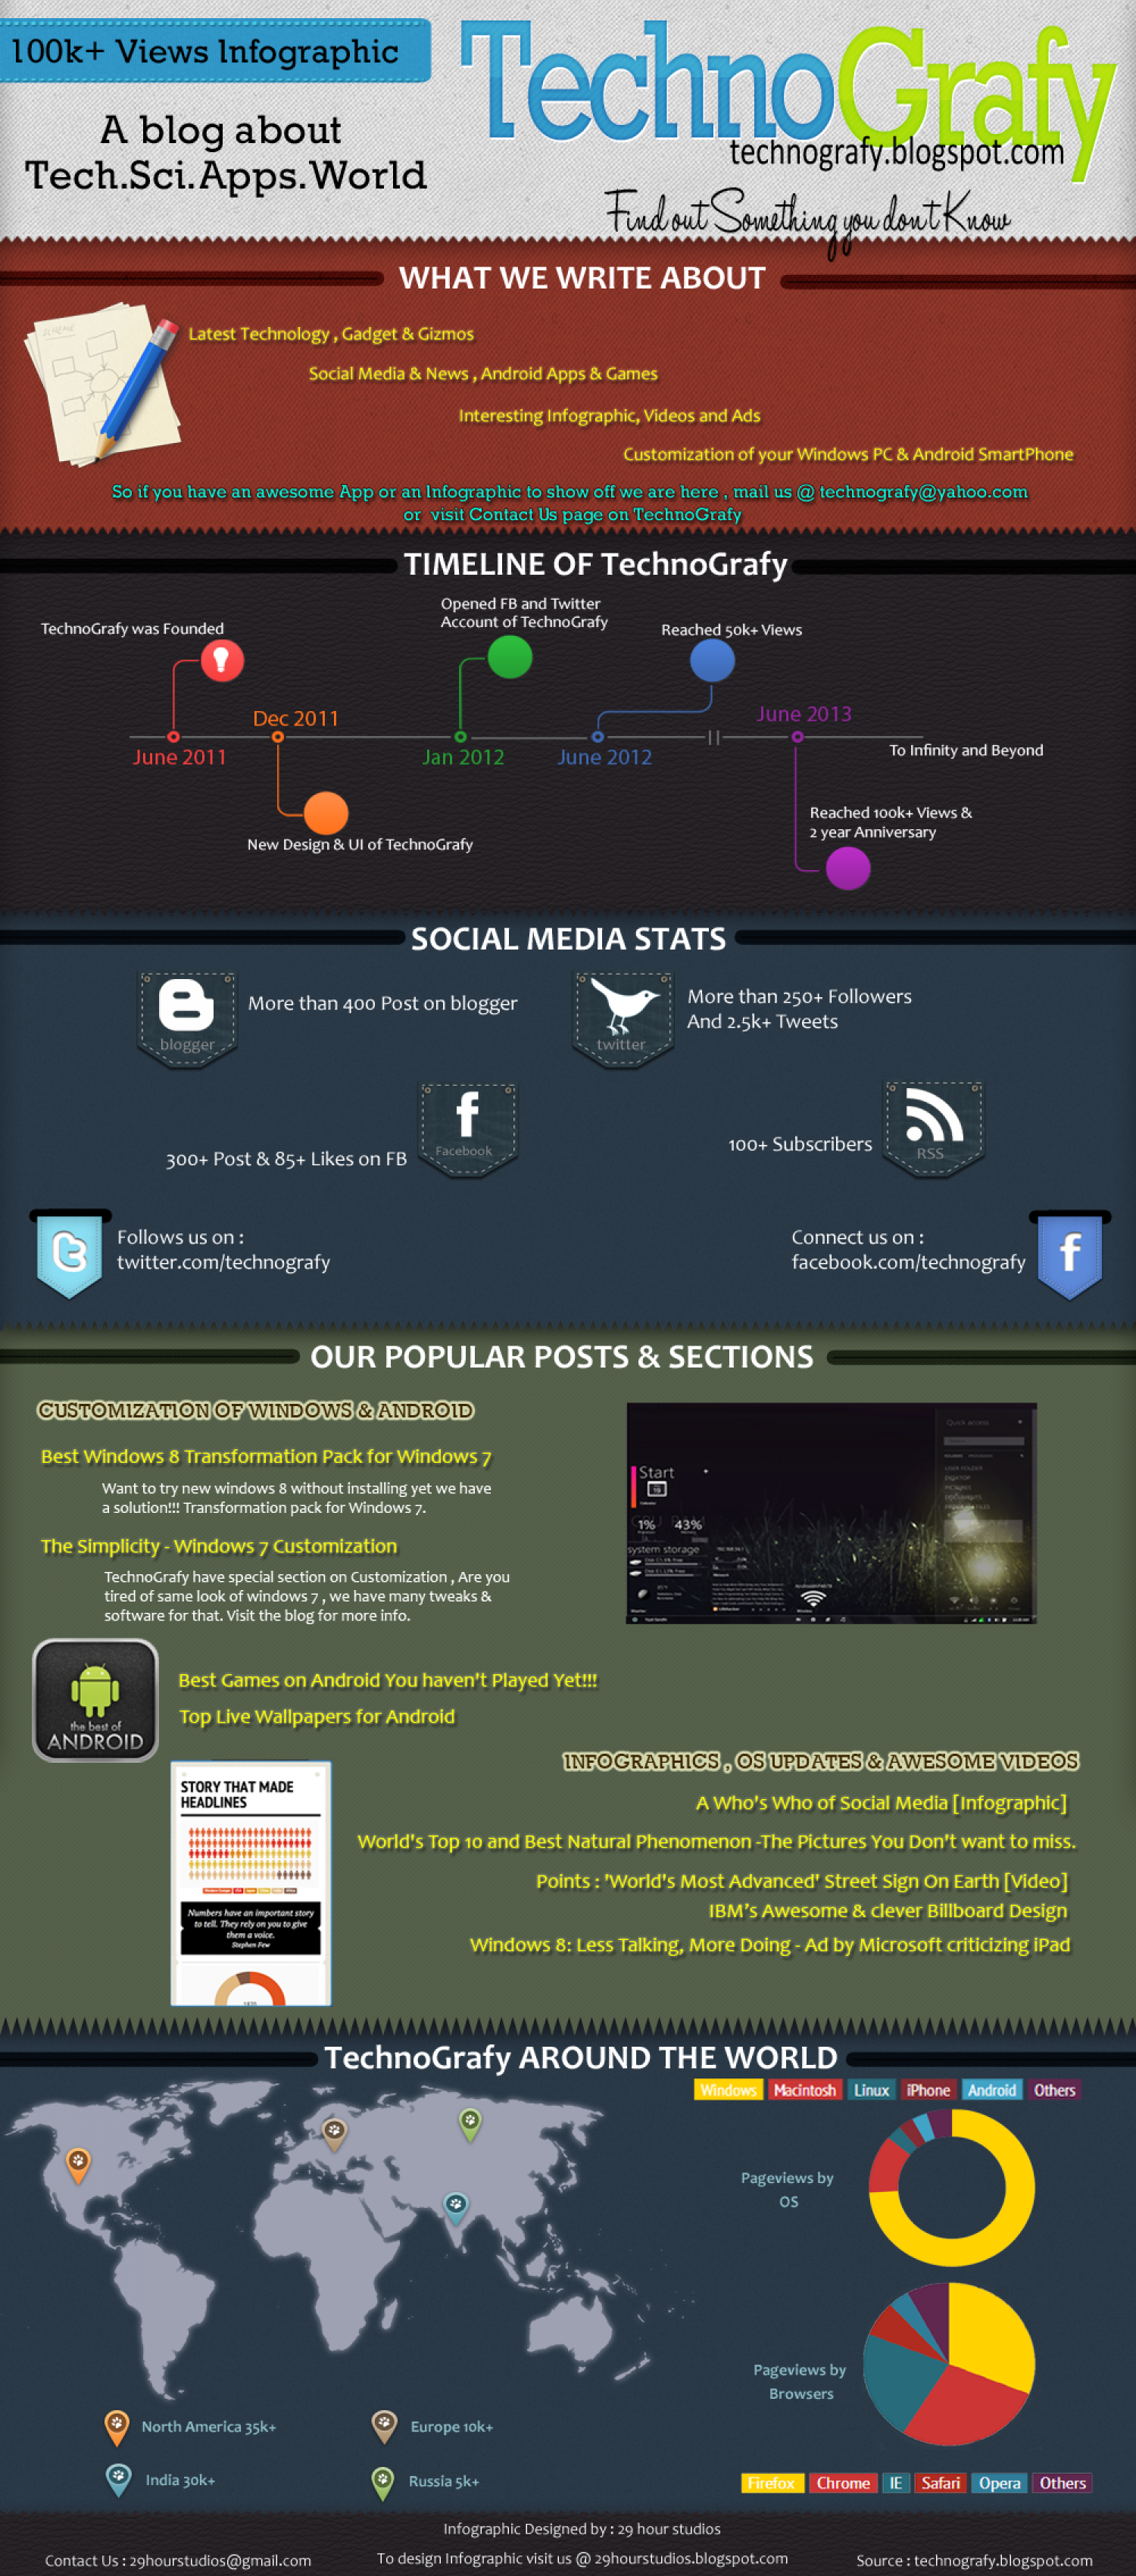 TechnoGrafy - a 100k+ views facts Infographic